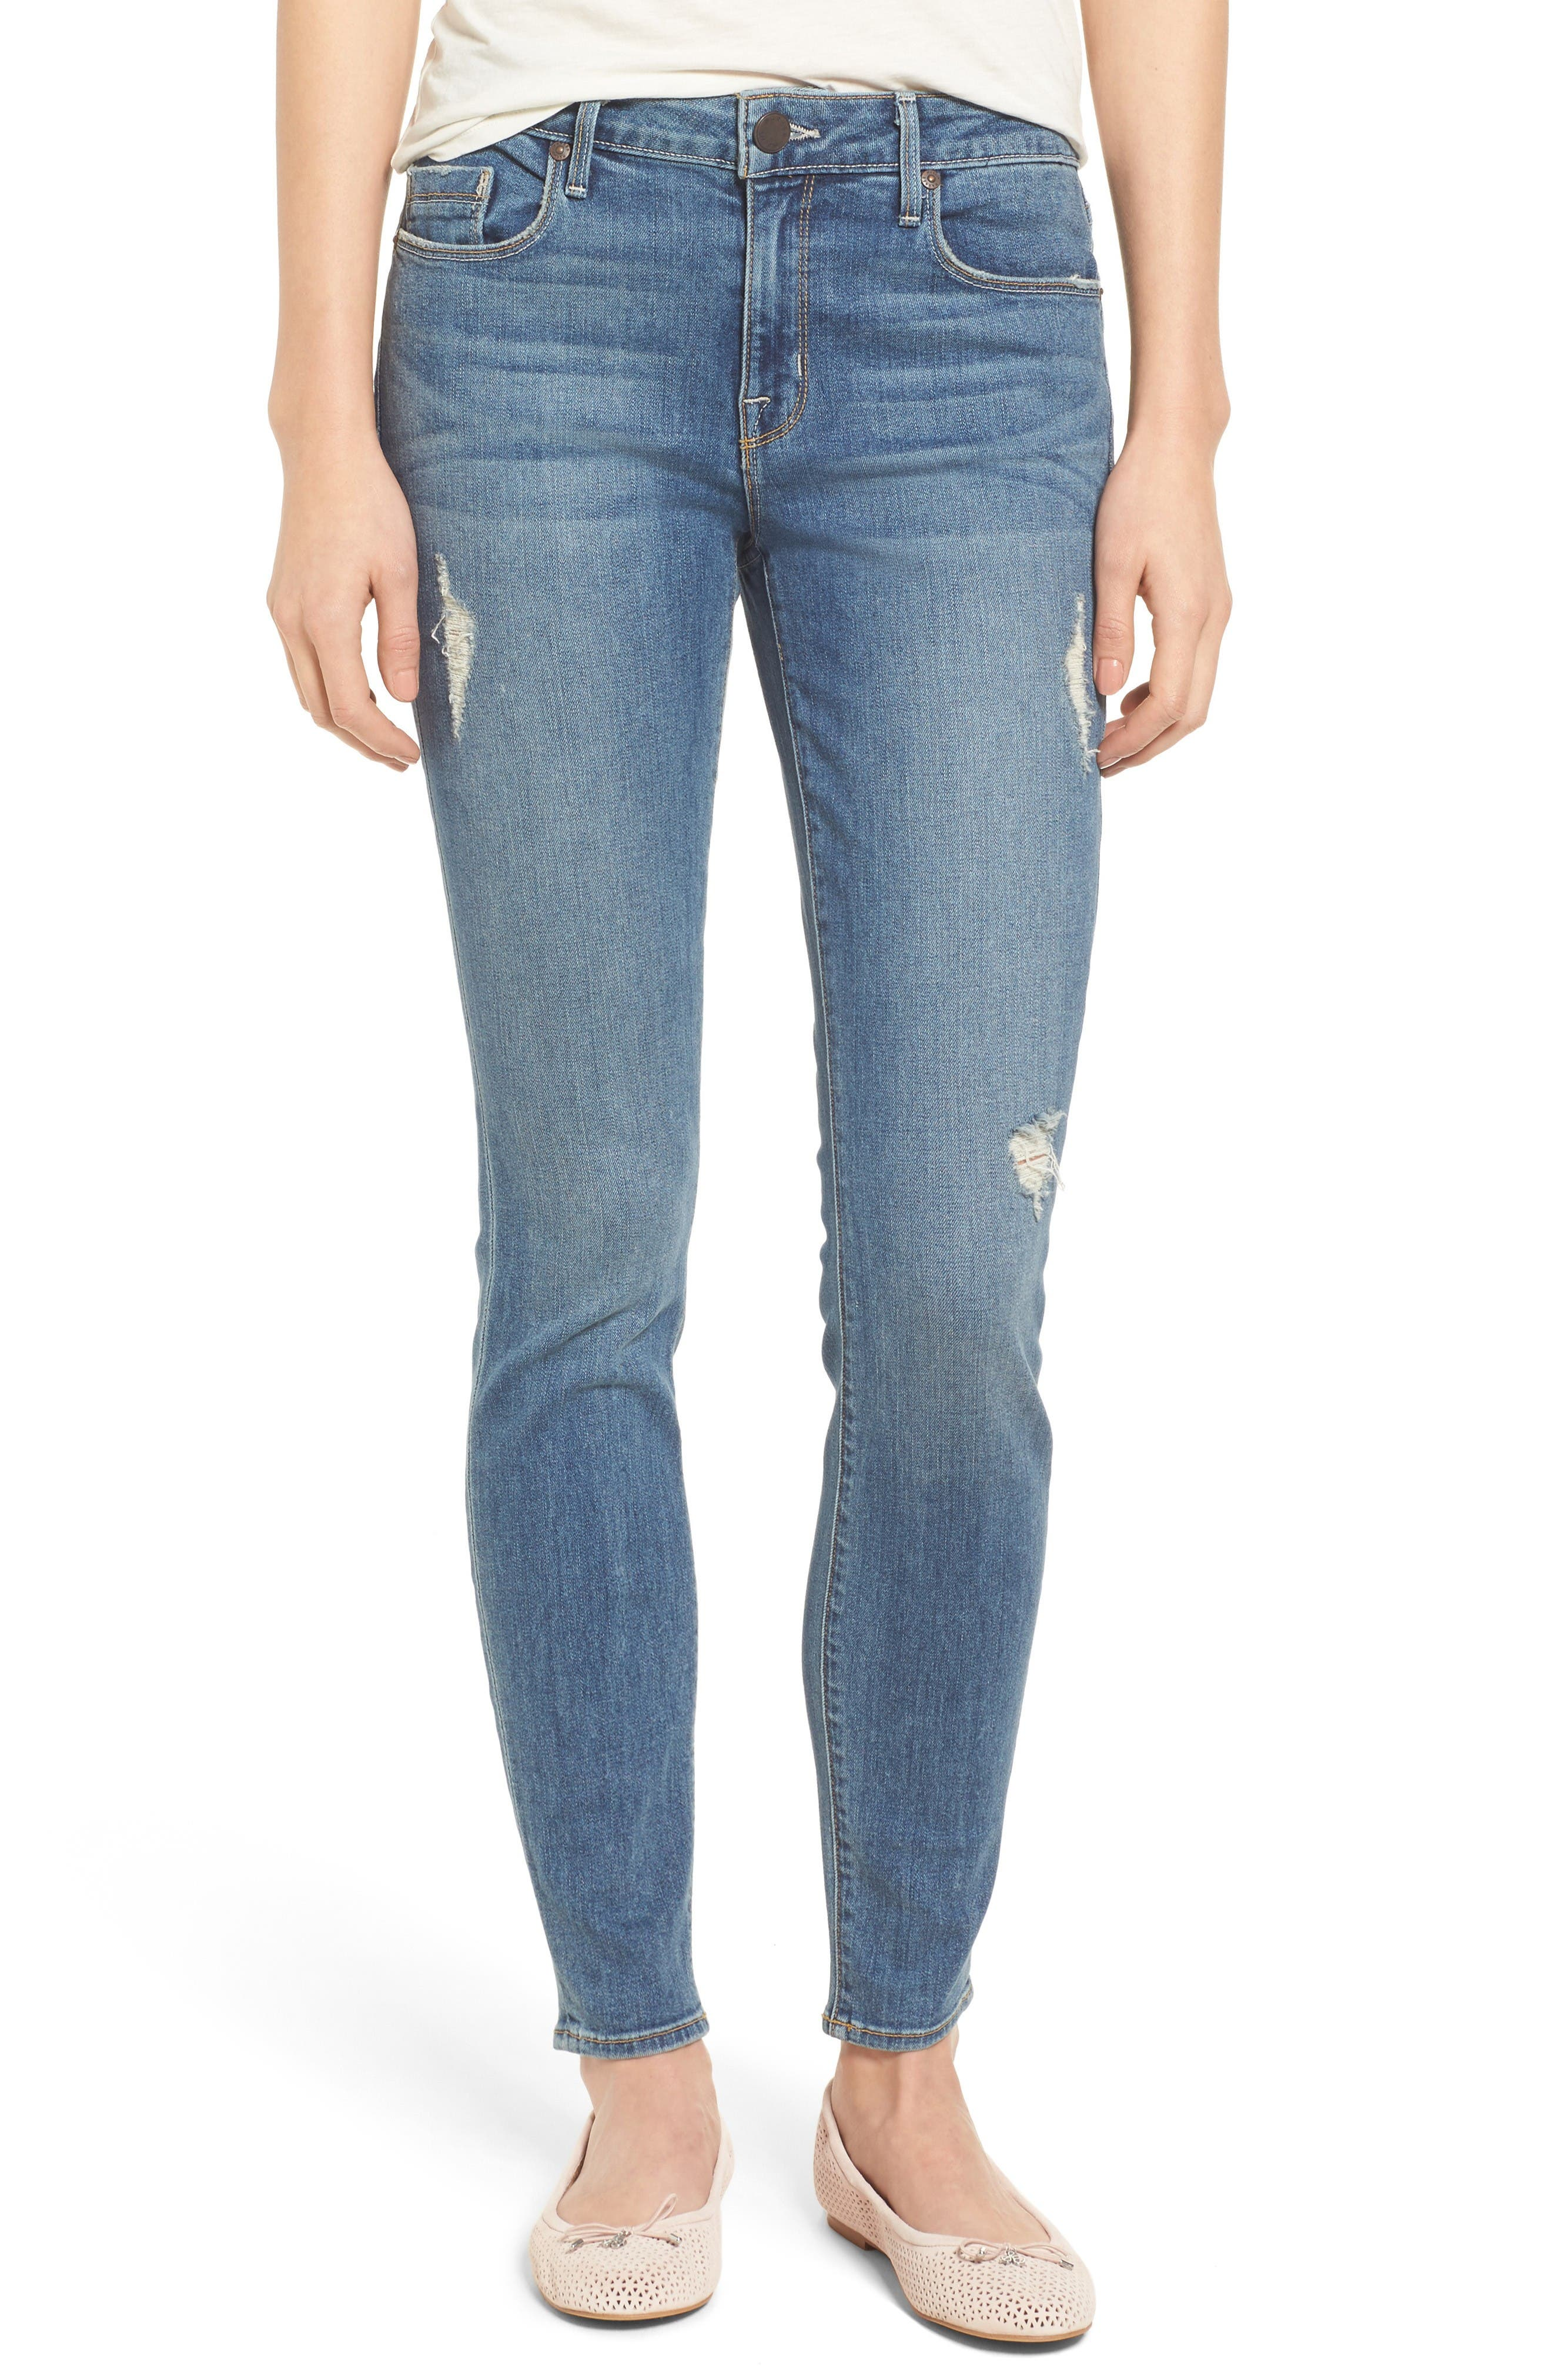 Main Image - PARKER SMITH Ava Stretch Skinny Jeans (Liverpool)